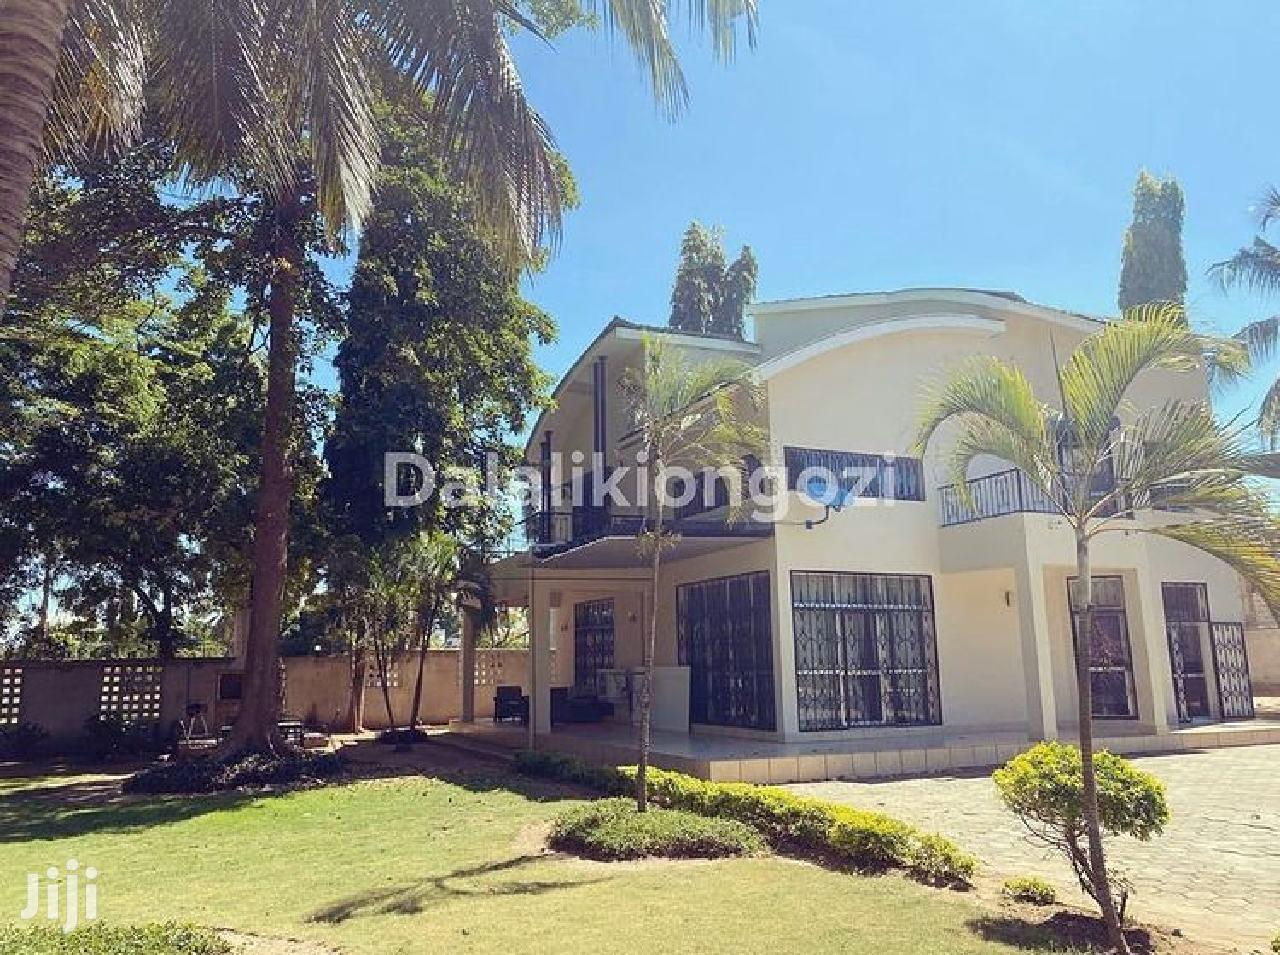 Three Bedrooms House For Rent | Houses & Apartments For Rent for sale in Mbezi, Kinondoni, Tanzania